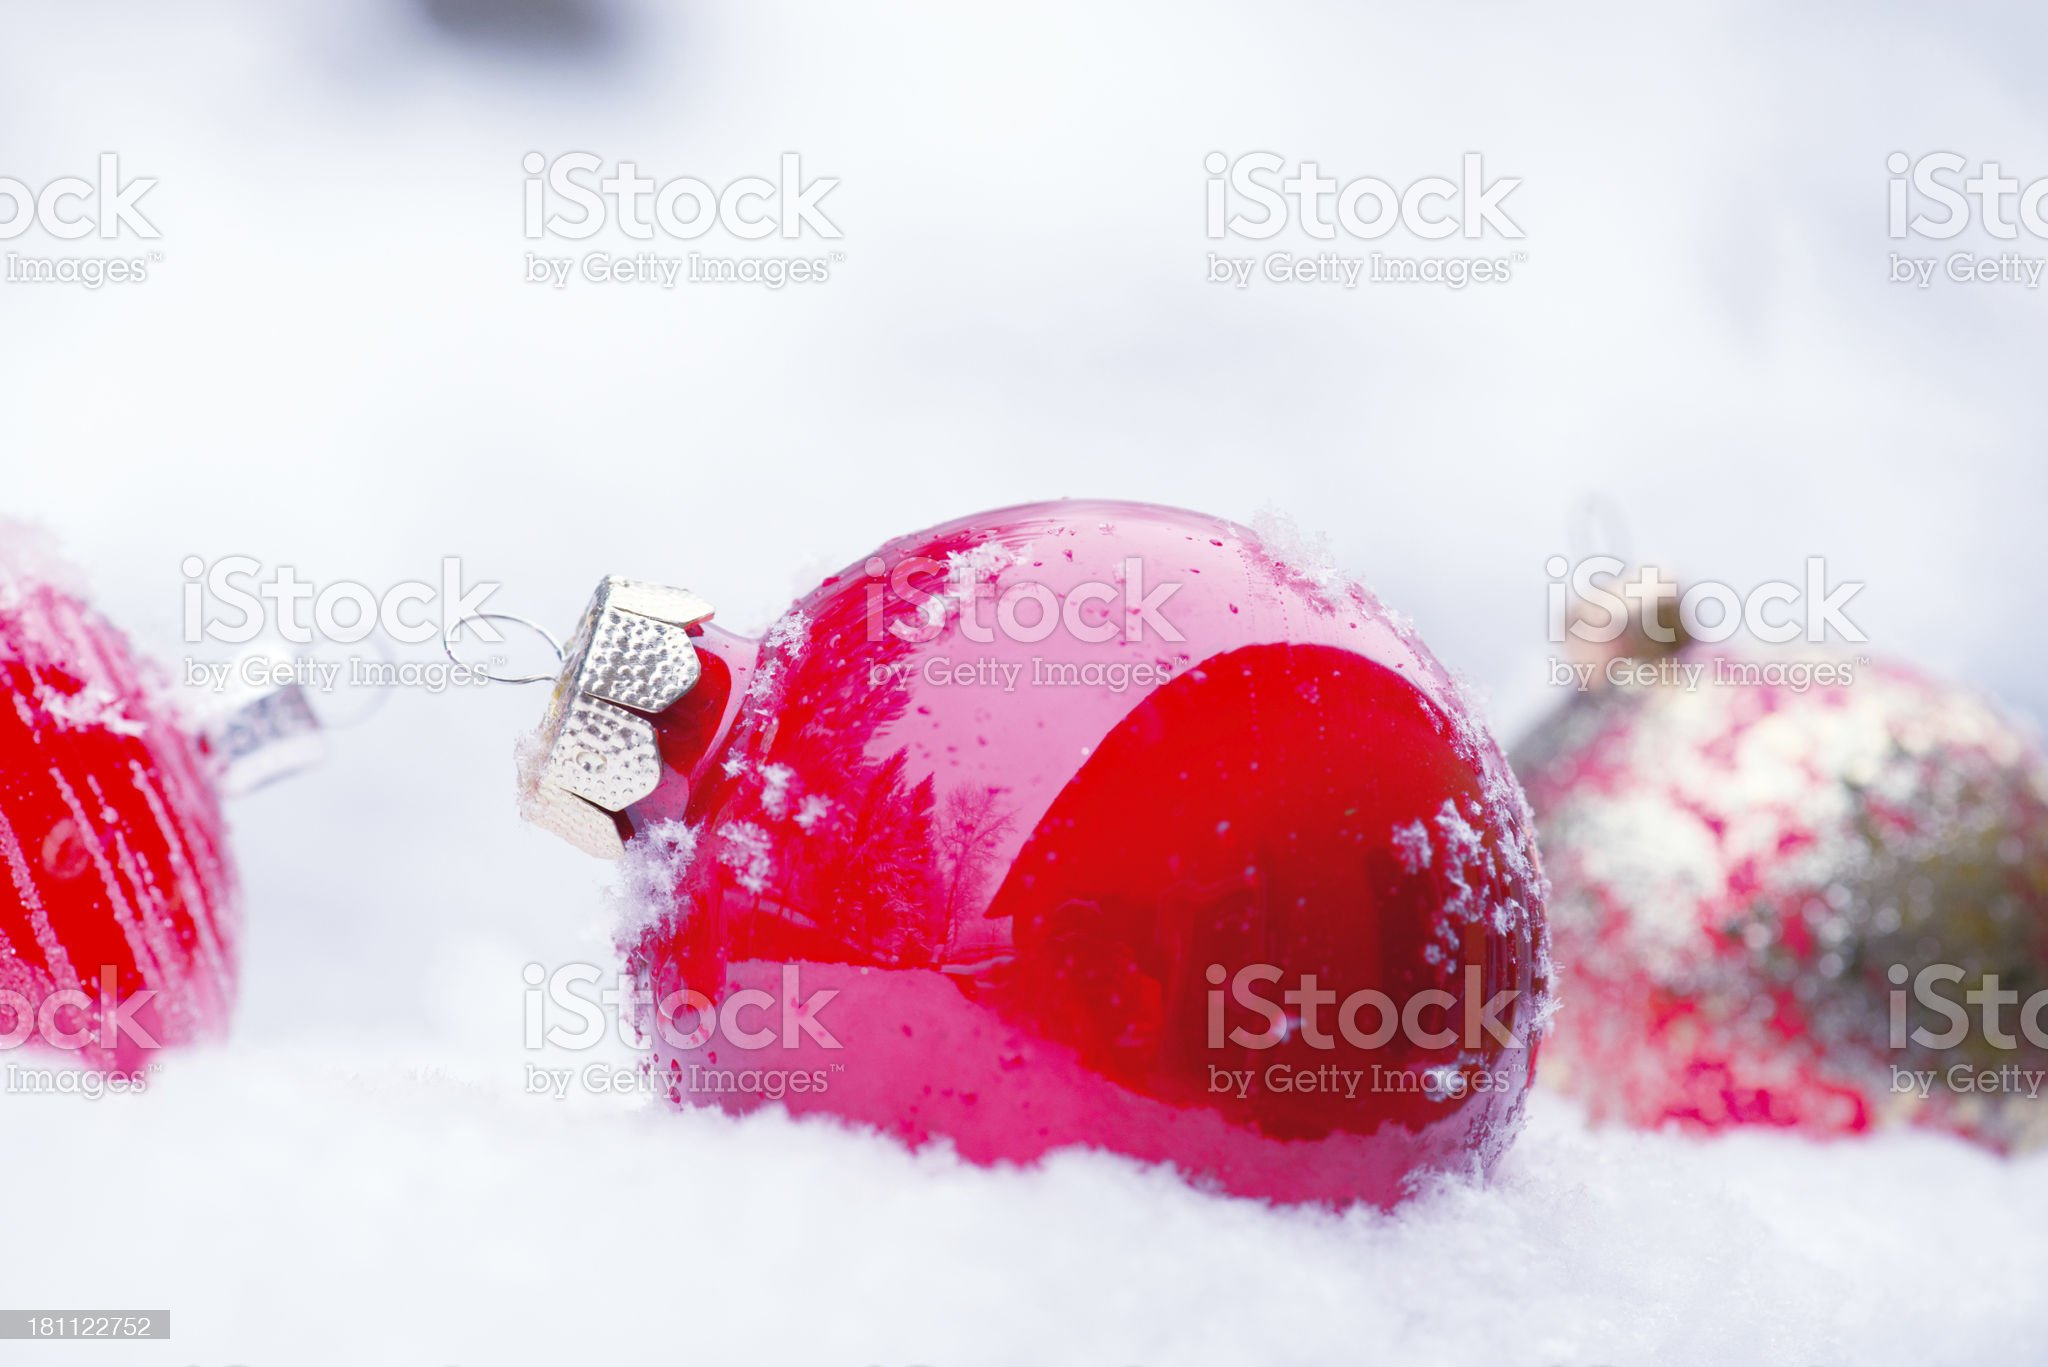 Christmas Ornaments in the Snow royalty-free stock photo